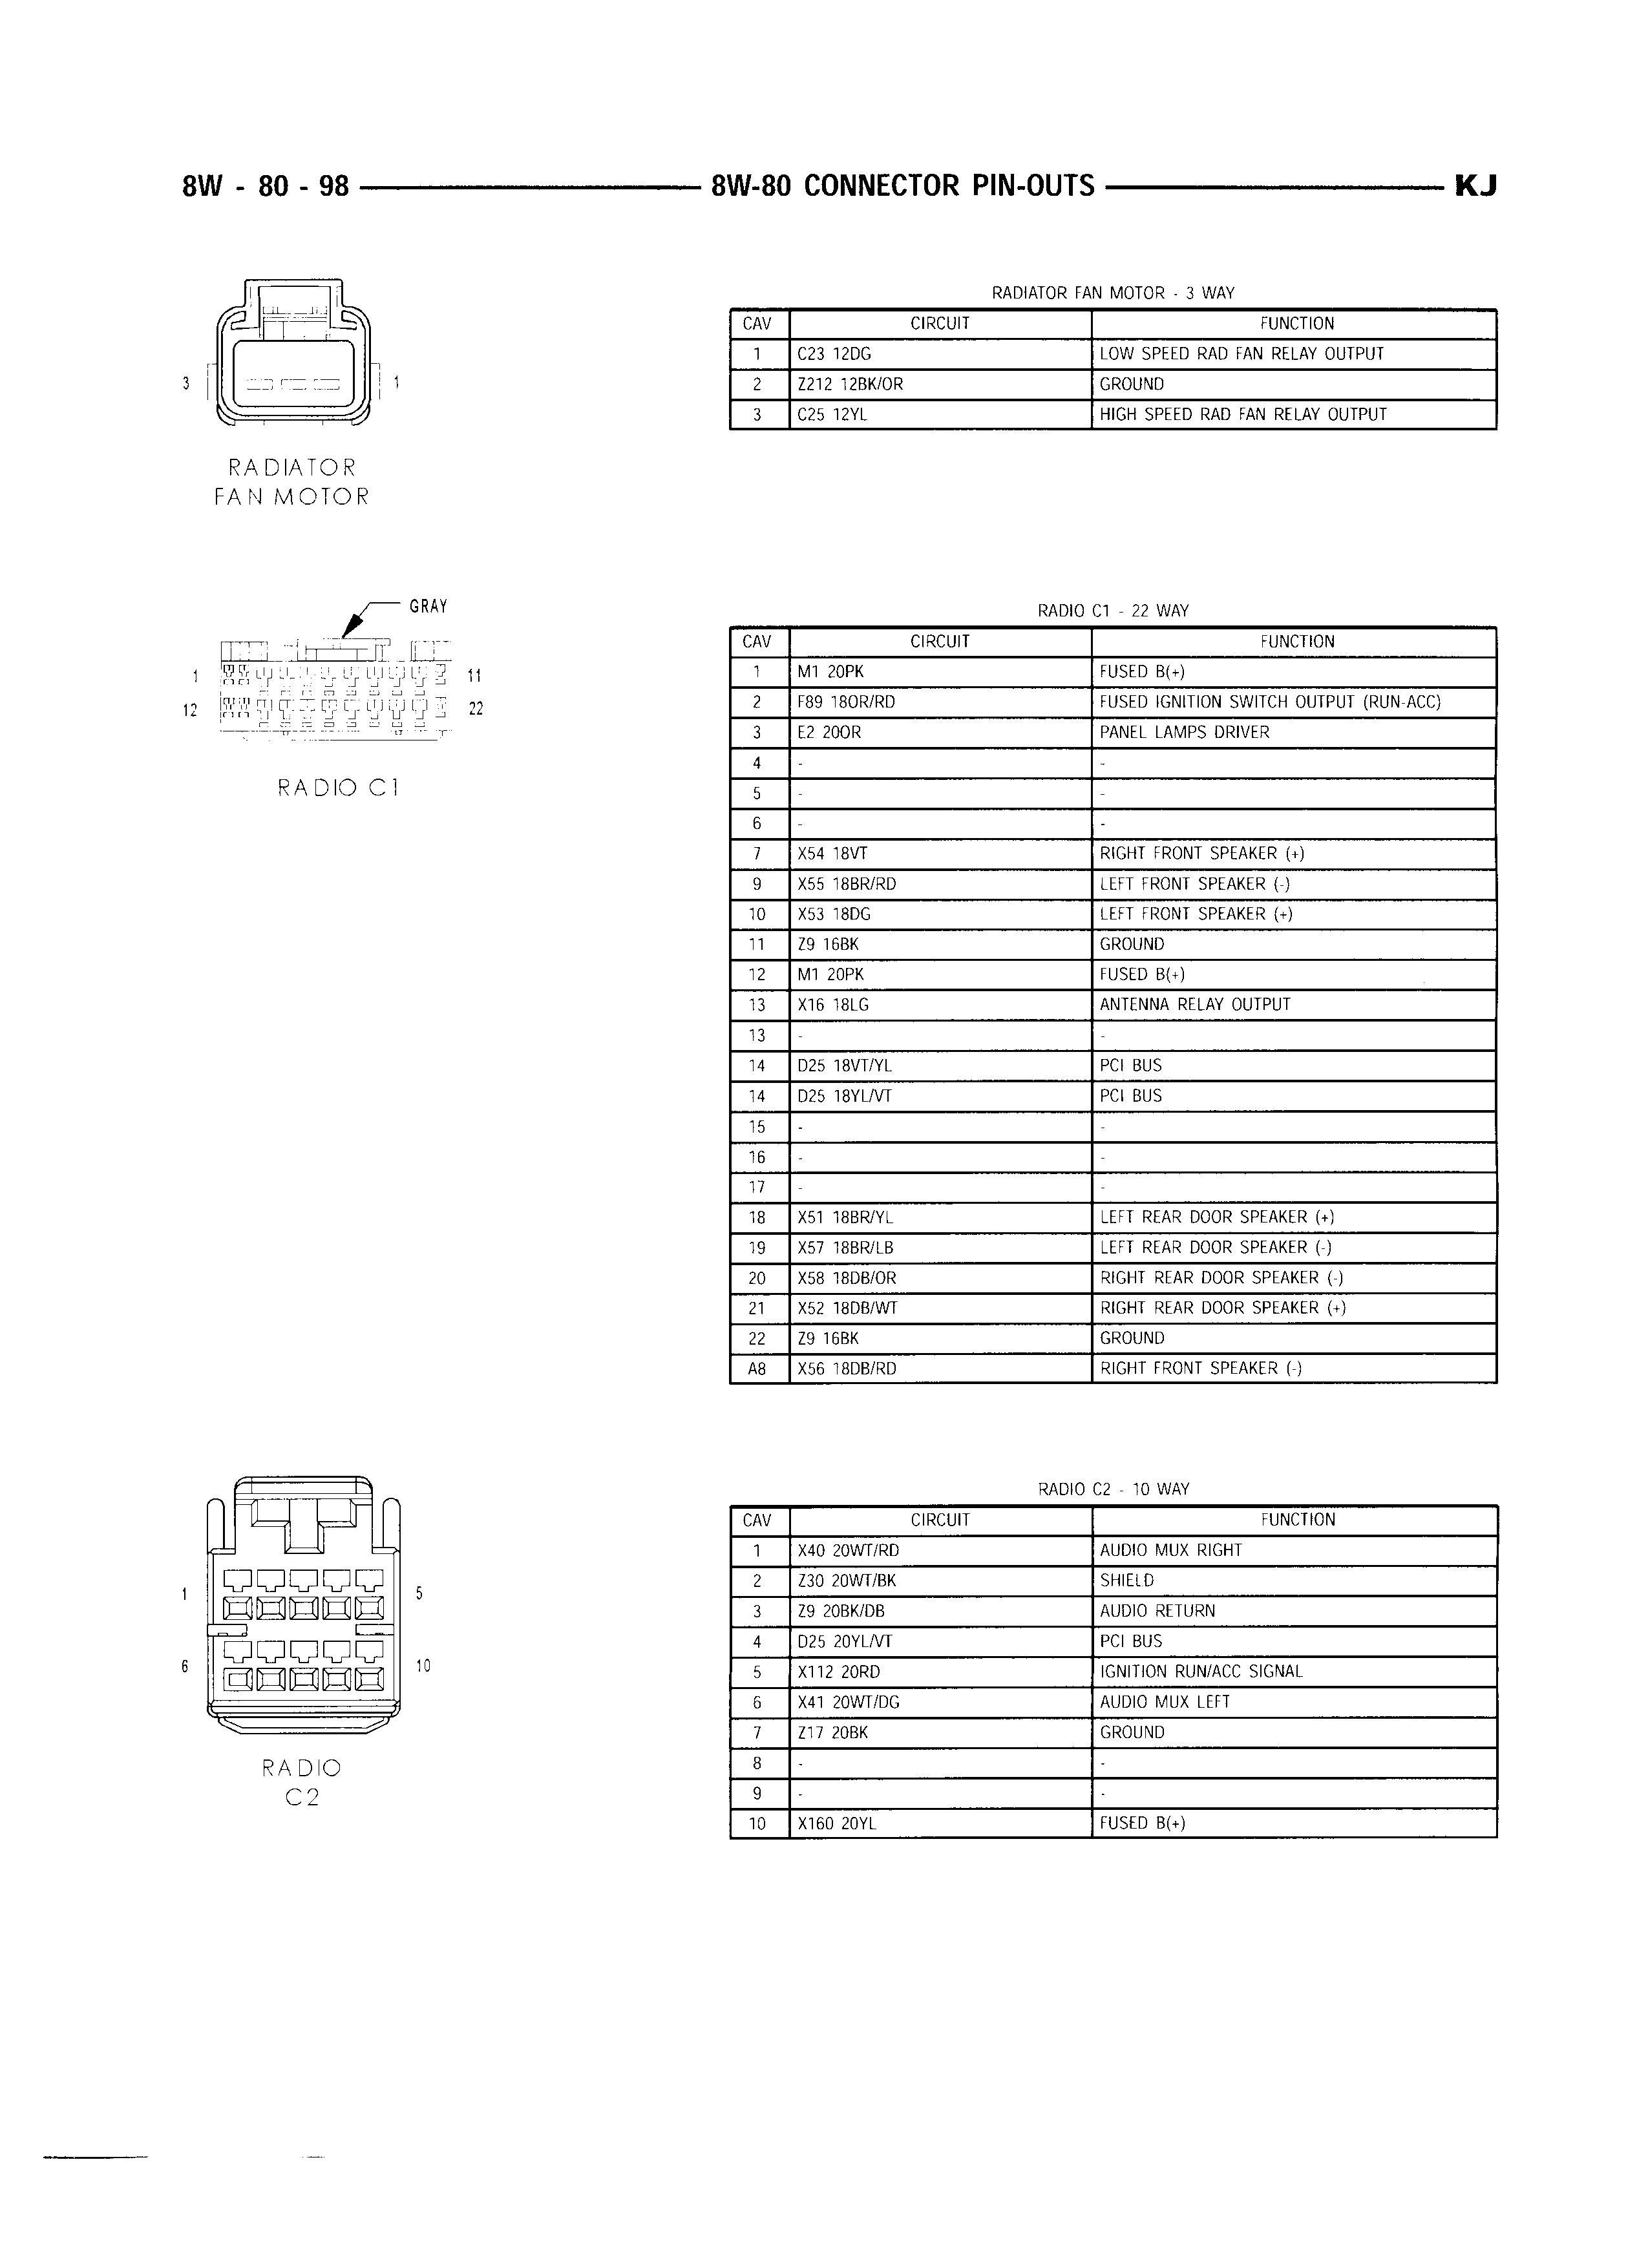 Stereo Wiring Diagram Jeep Grand Cherokee 2005 F150 Engine Diagram For Wiring Diagram Schematics